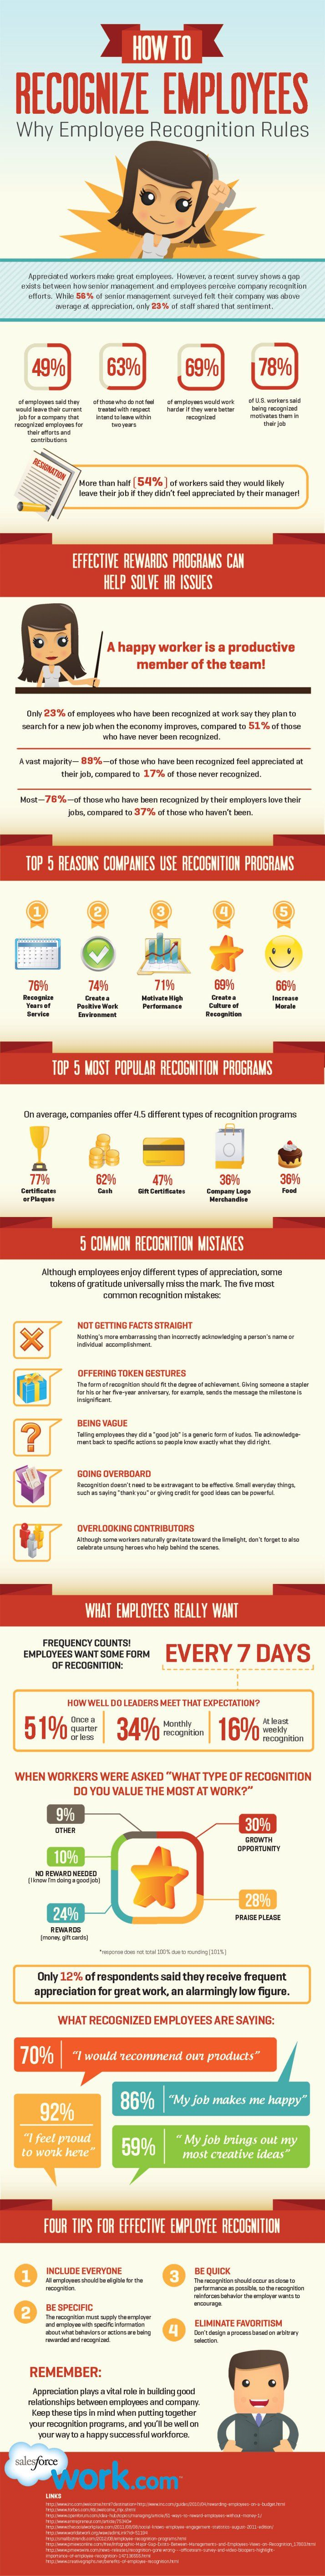 How to recognize employees #infografia #infographic